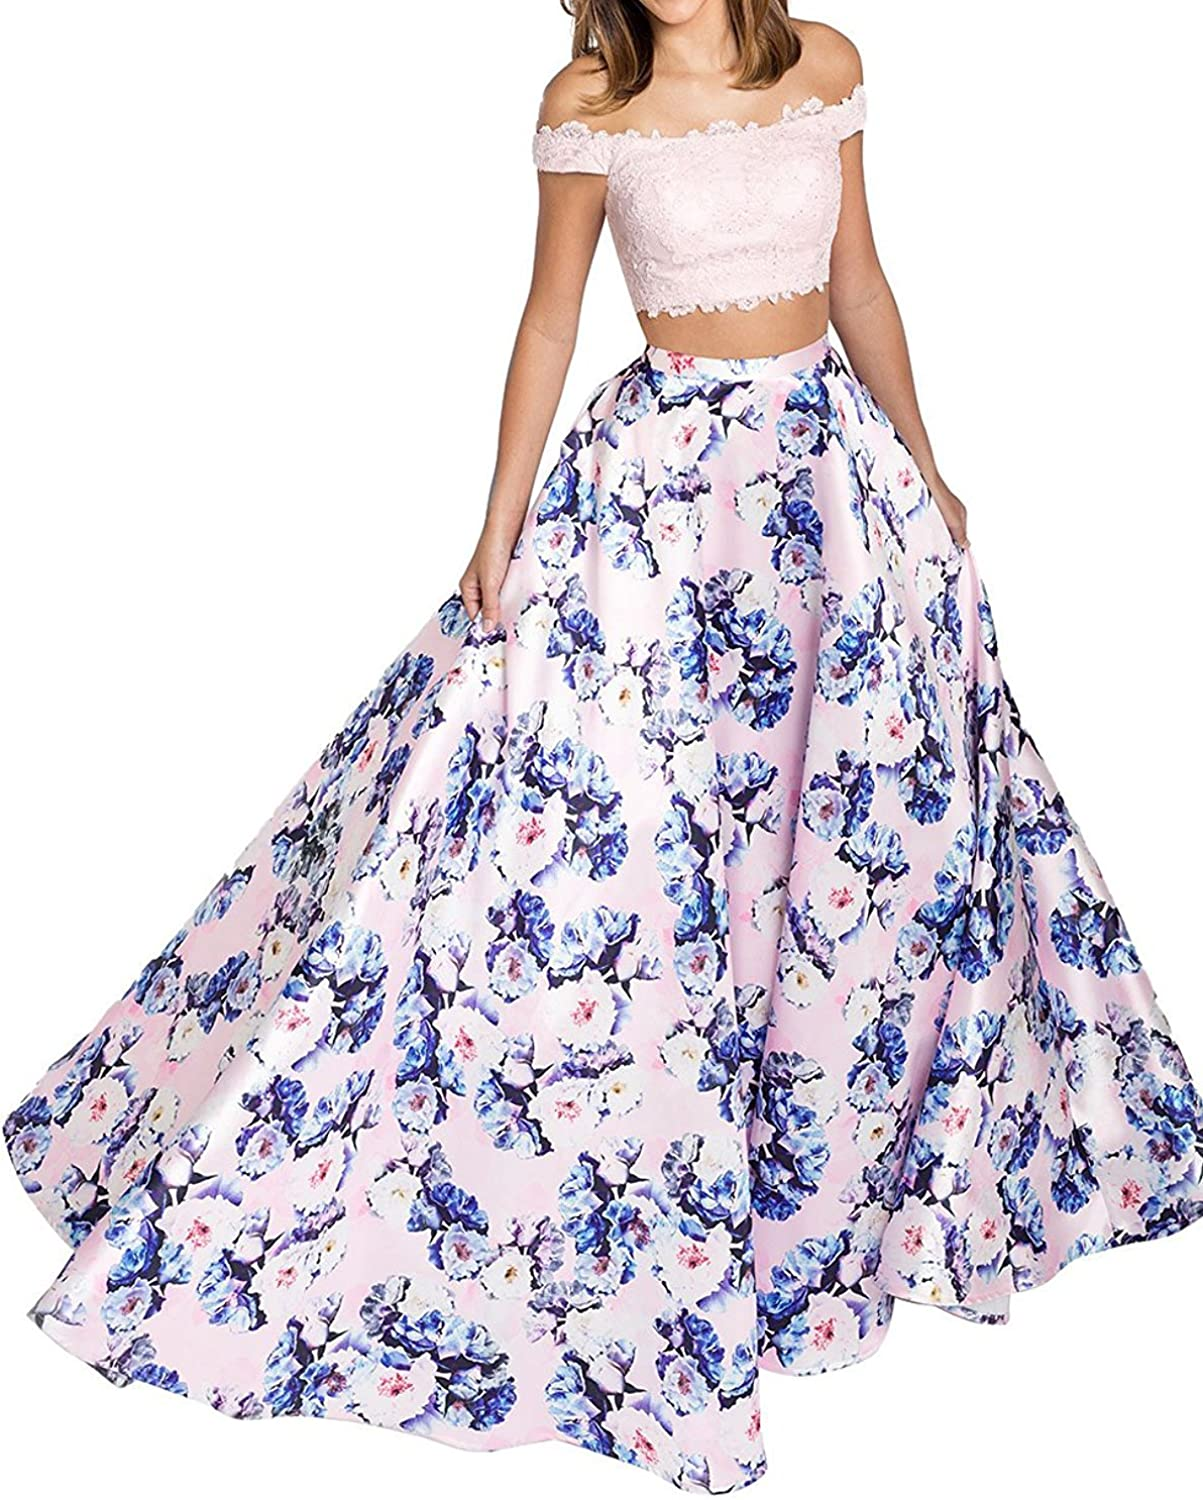 BessWedding Women's Two Piece Floral Printed Satins Prom Dresses 2018 Formal Evening Gowns BP011